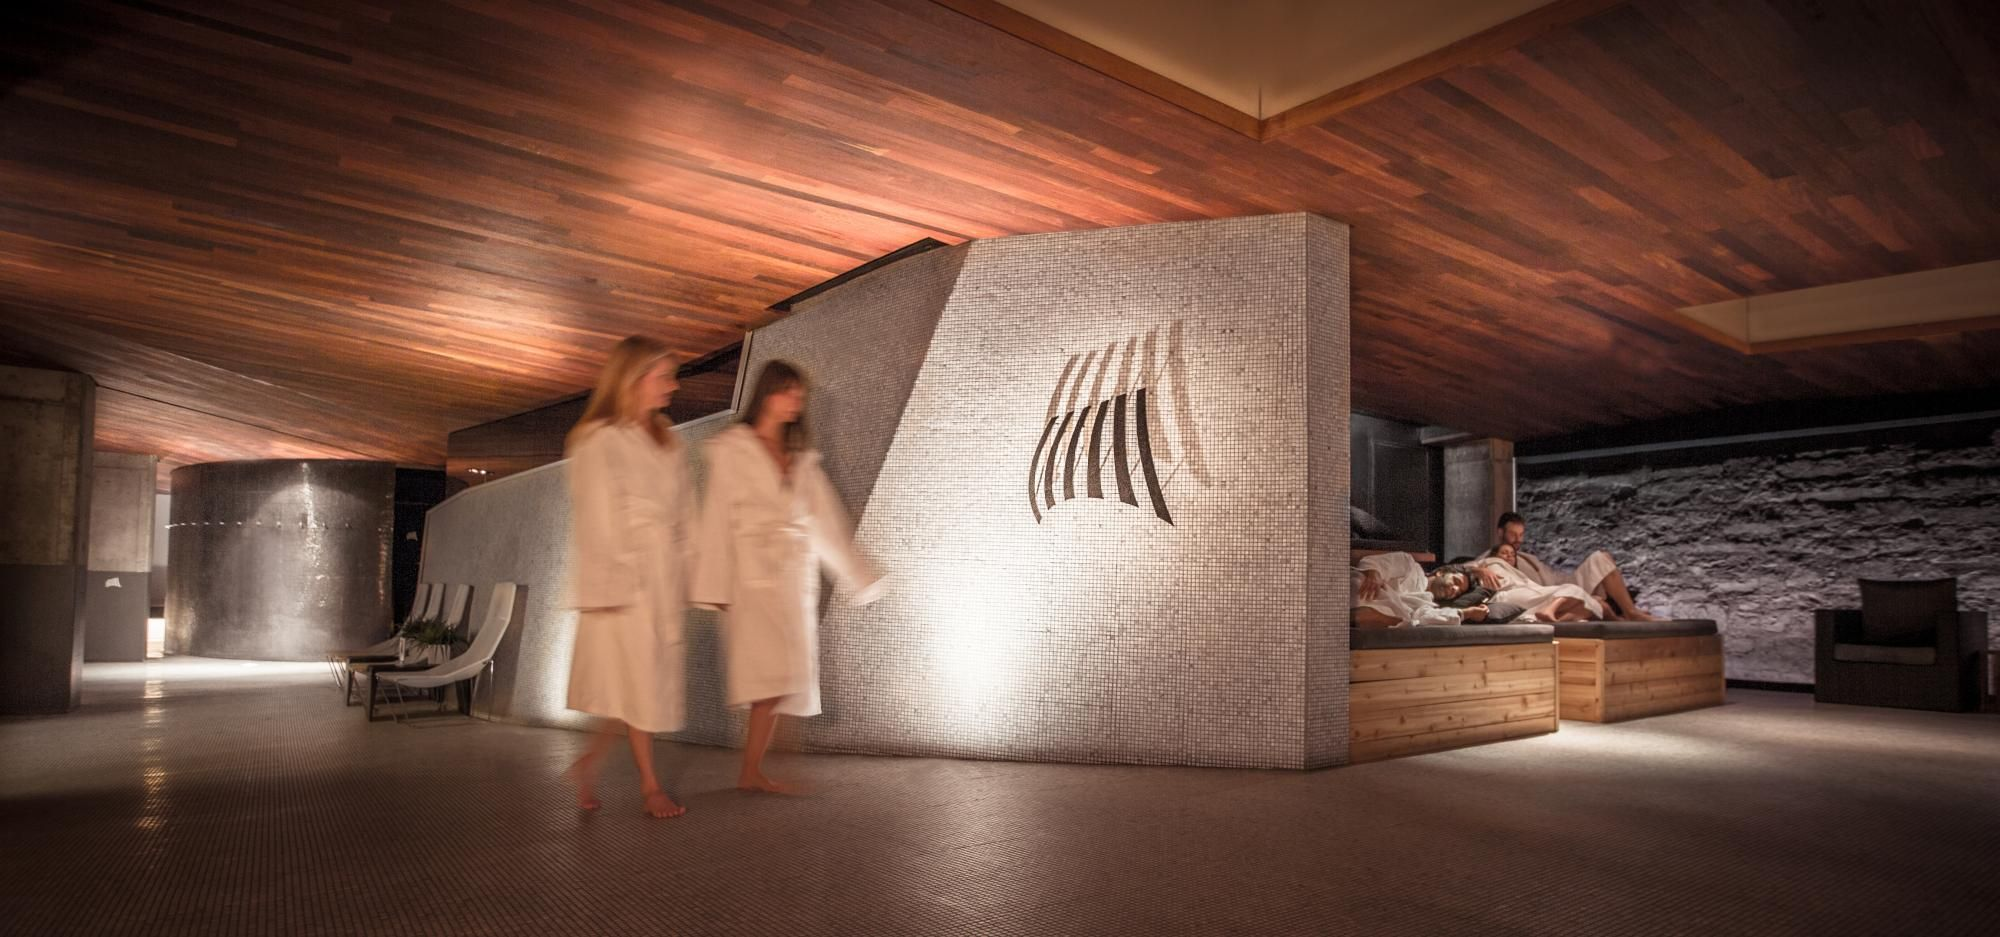 Scandinave Spa Vieux Montreal Offers A Traditional Scandinavian Baths Experience In A Peaceful Environment In The Heart Of Scandinavian Baths Old Montreal Spa